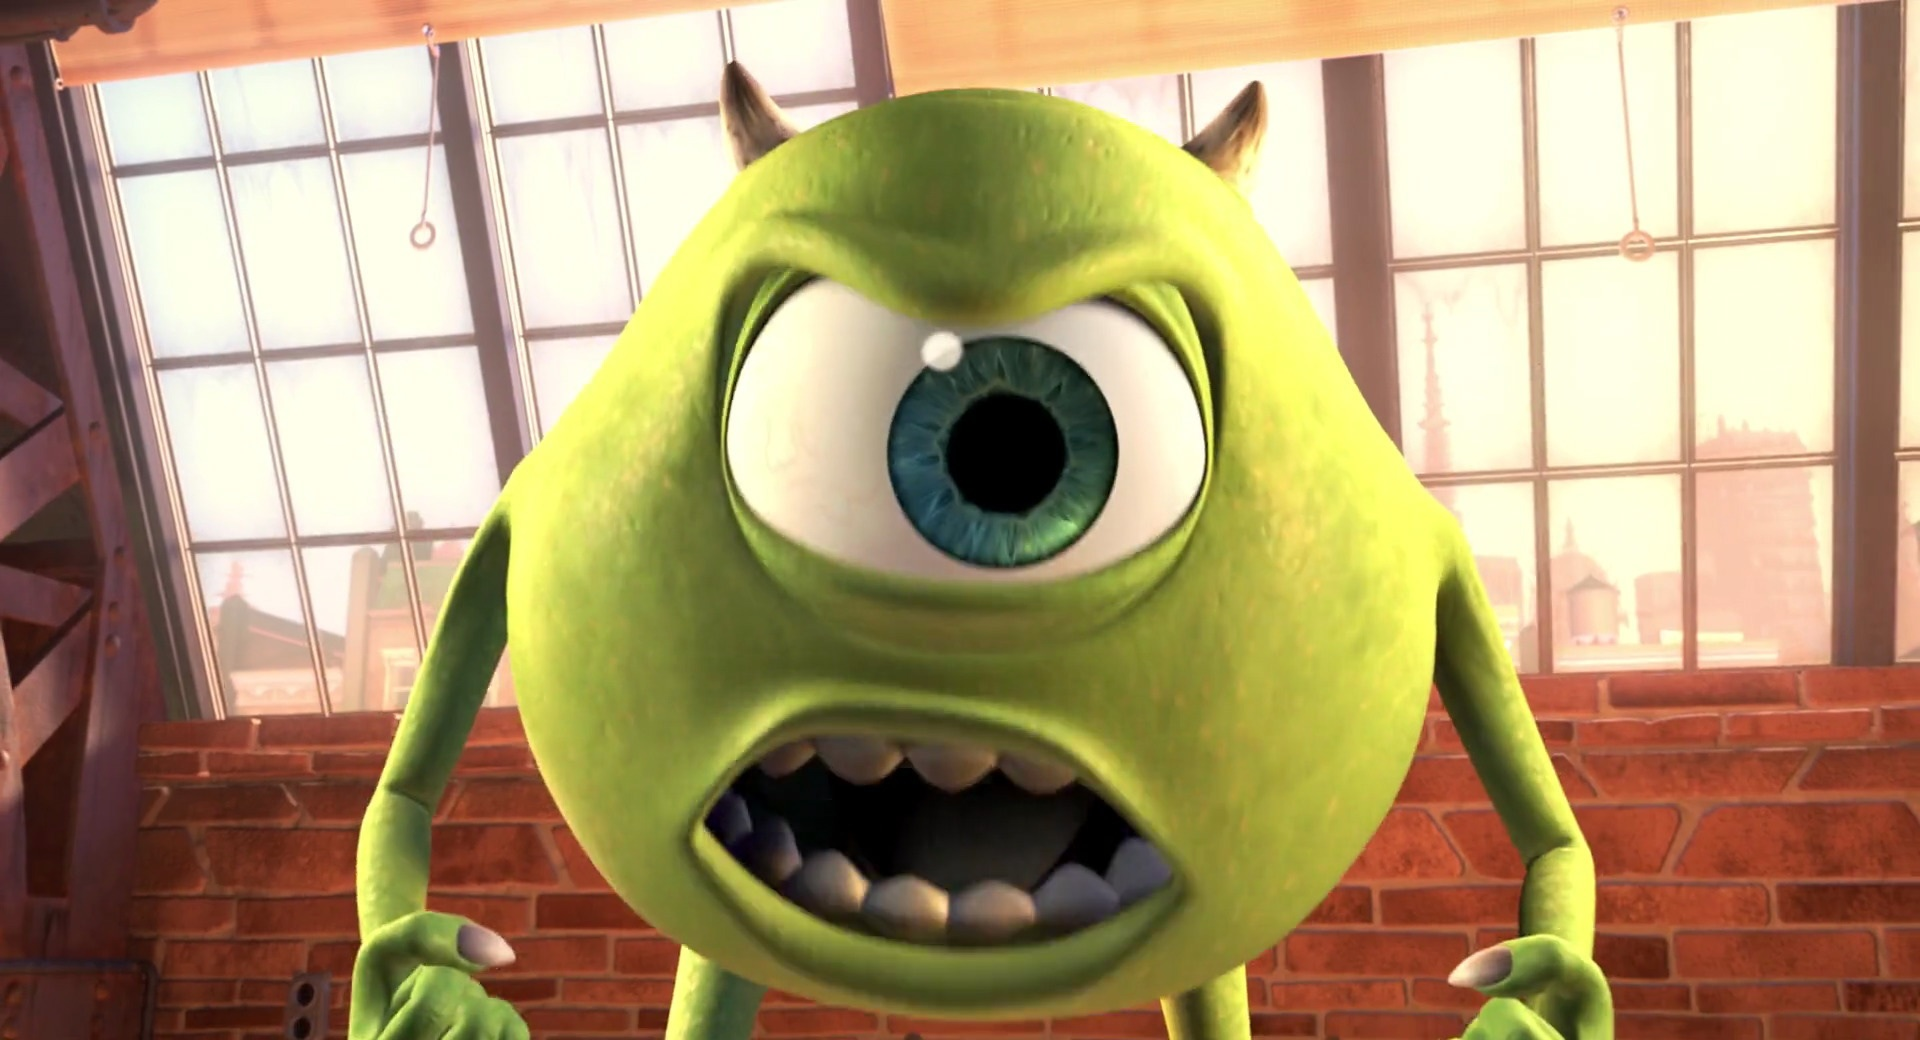 Image result for angry mike wazowski